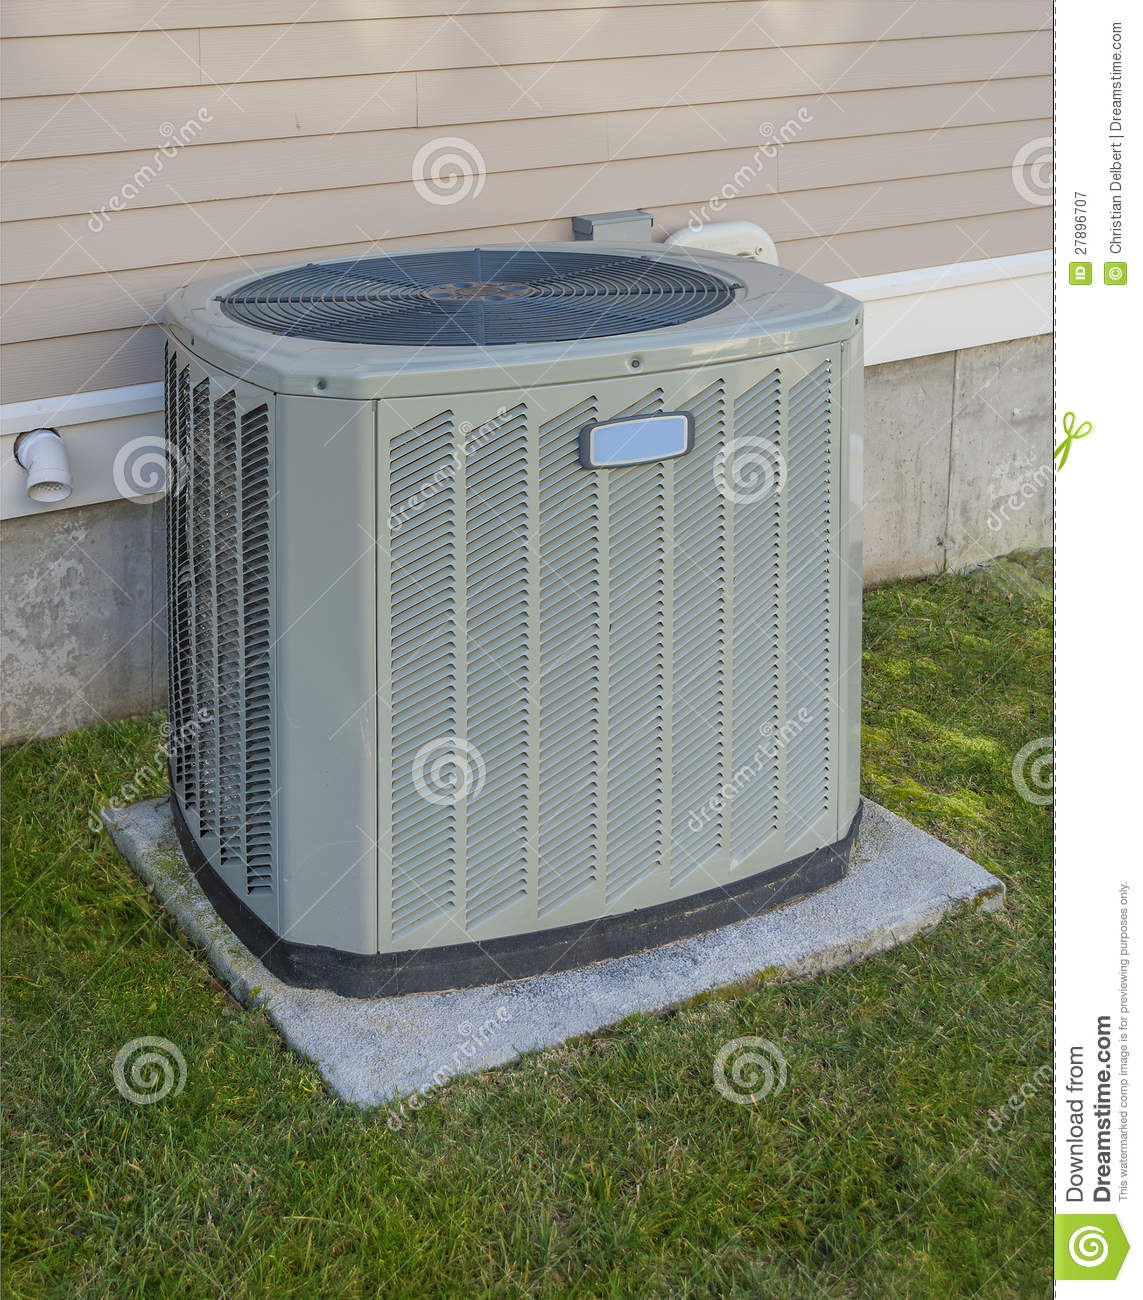 Royalty Free Stock Photography Heating Cooling Unit Image27896707 on Residential Metal Home Plans